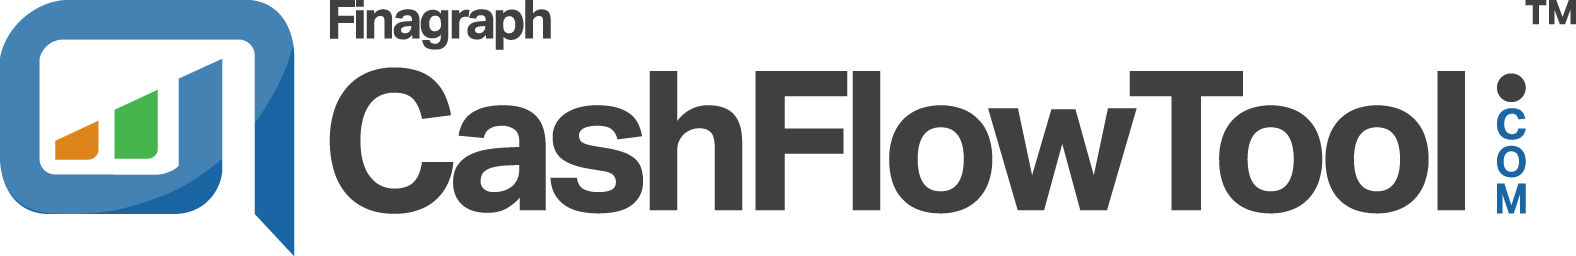 cashflowtool.com-logo-color-black-text-hi-res